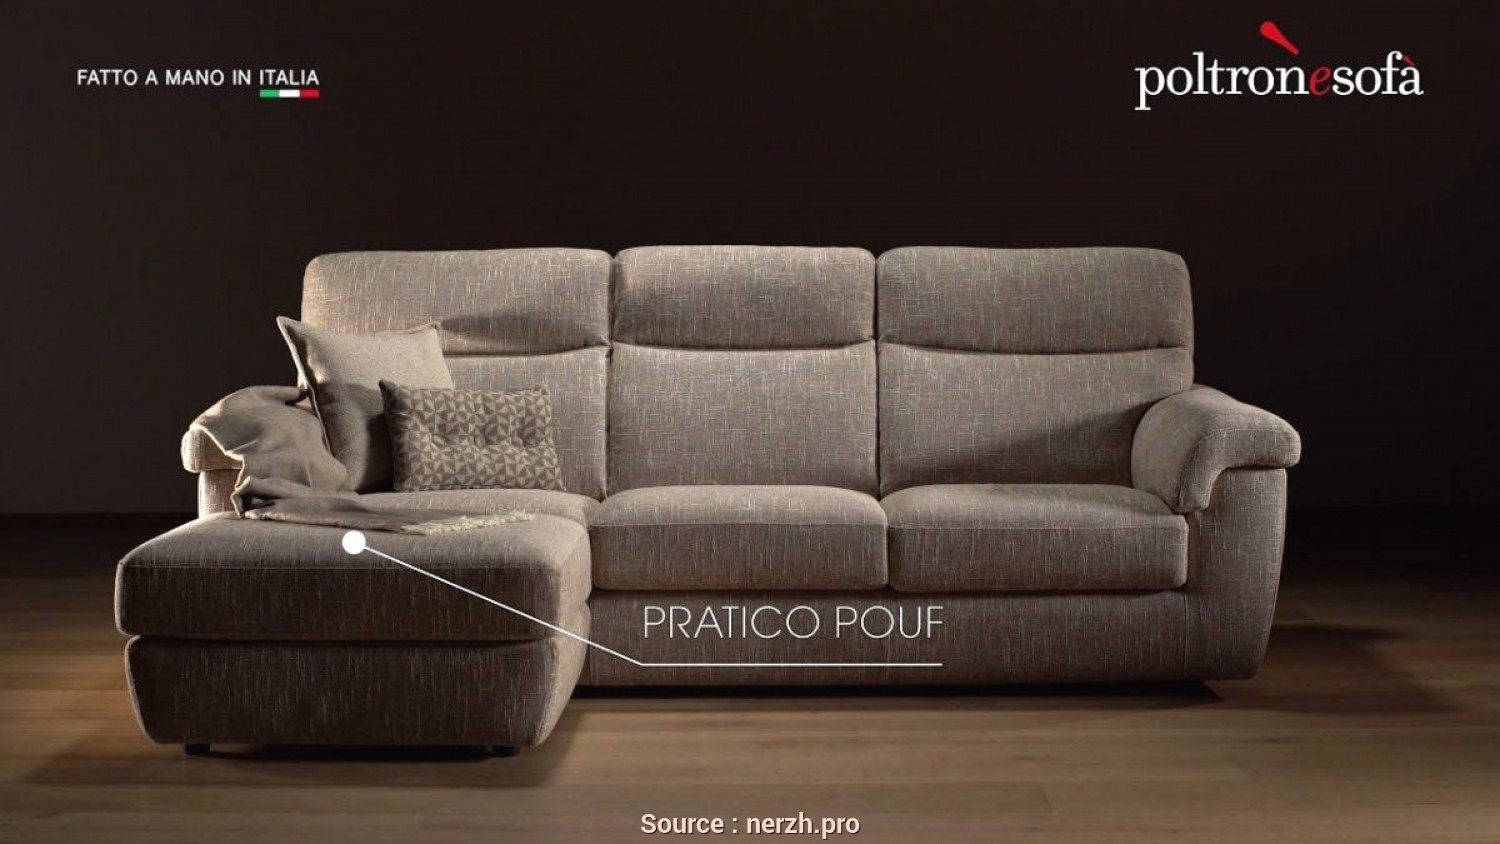 Deale 5 divano curvo poltrone e sofa jake vintage for Poltrone e sofa